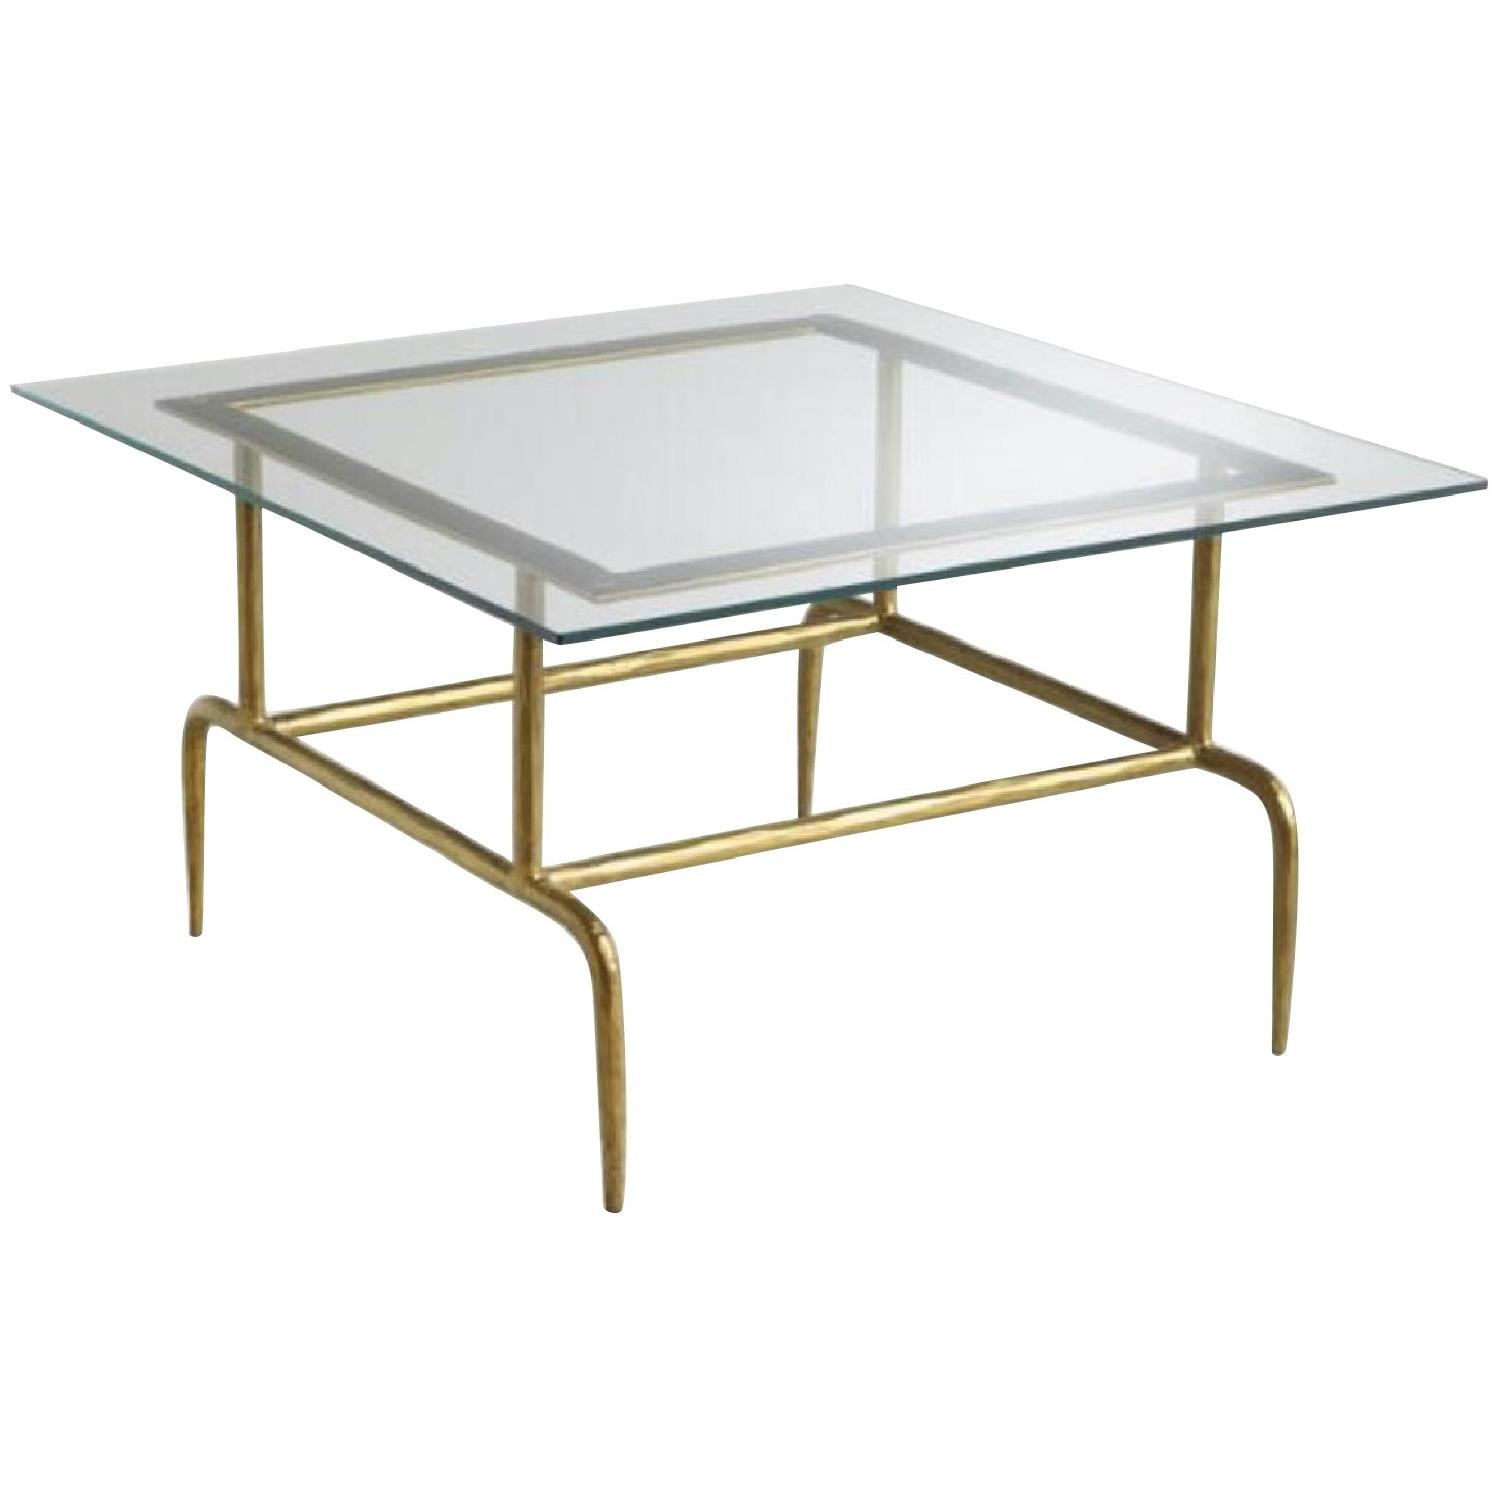 World Market Glass & Metal Square Lorea Coffee Table - image-0